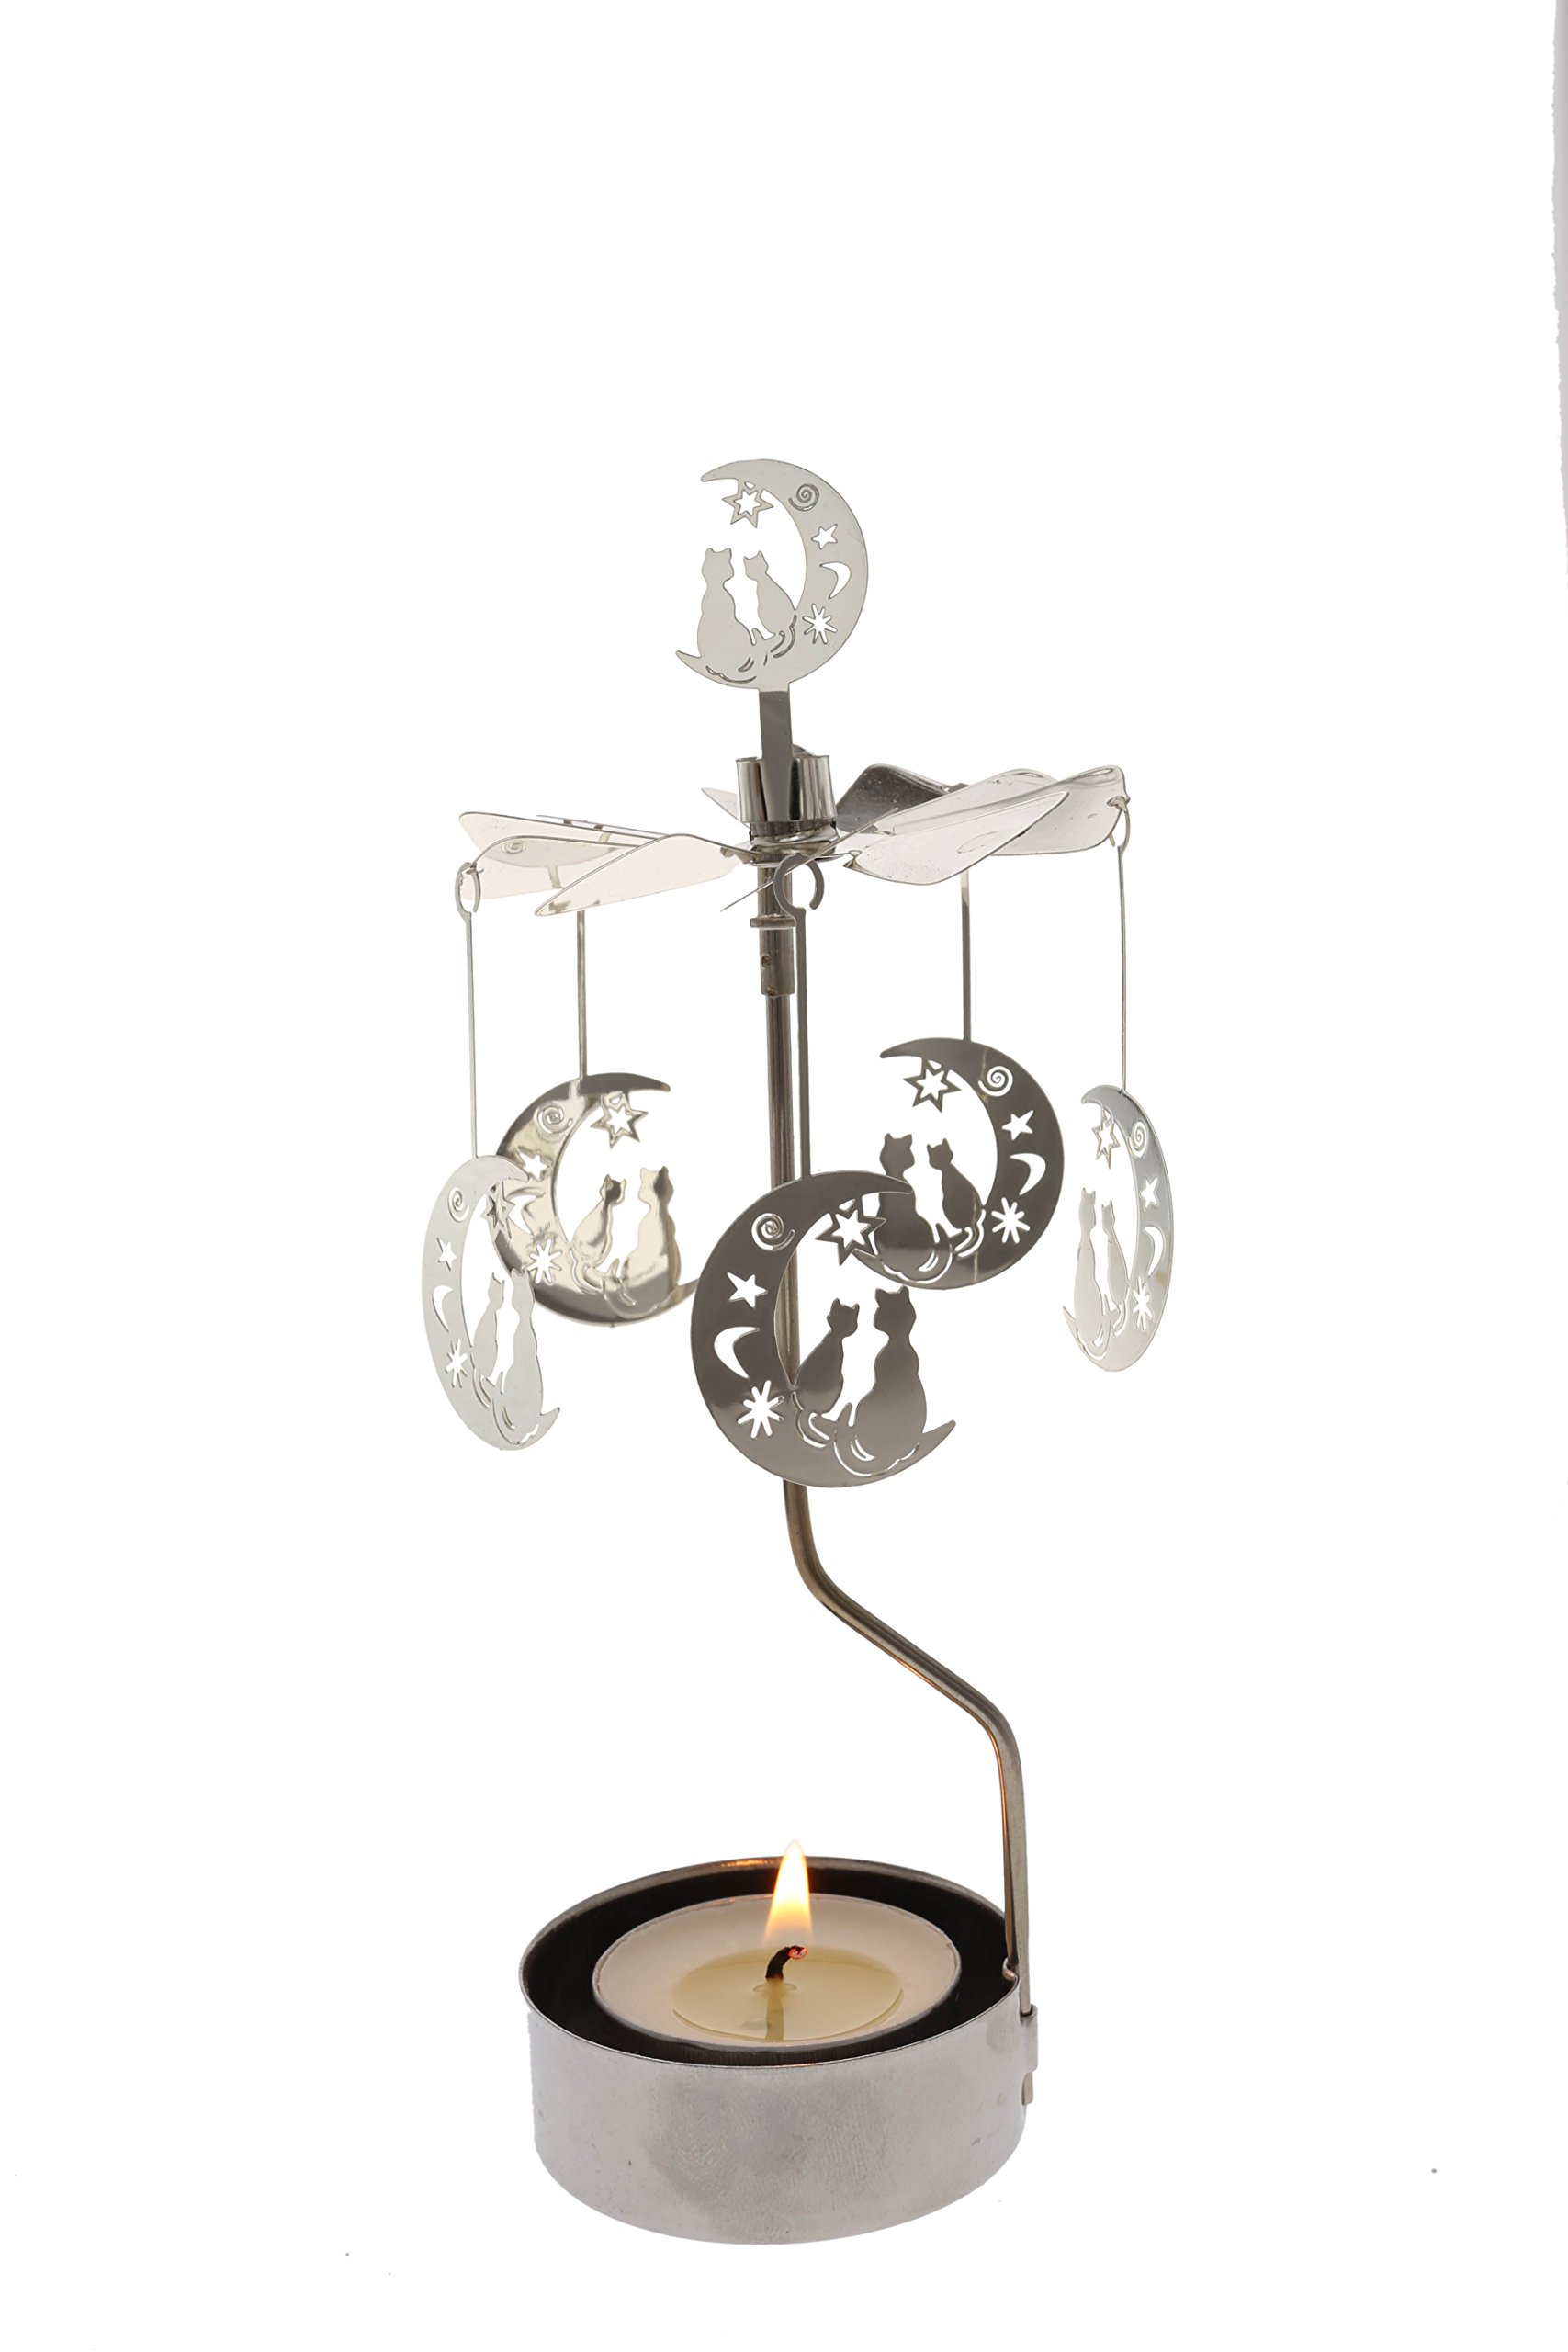 Rotary Candle Holder Spinning Candleholder Metal Small Gift (Moon+cat) by Mustaner (Image #1)